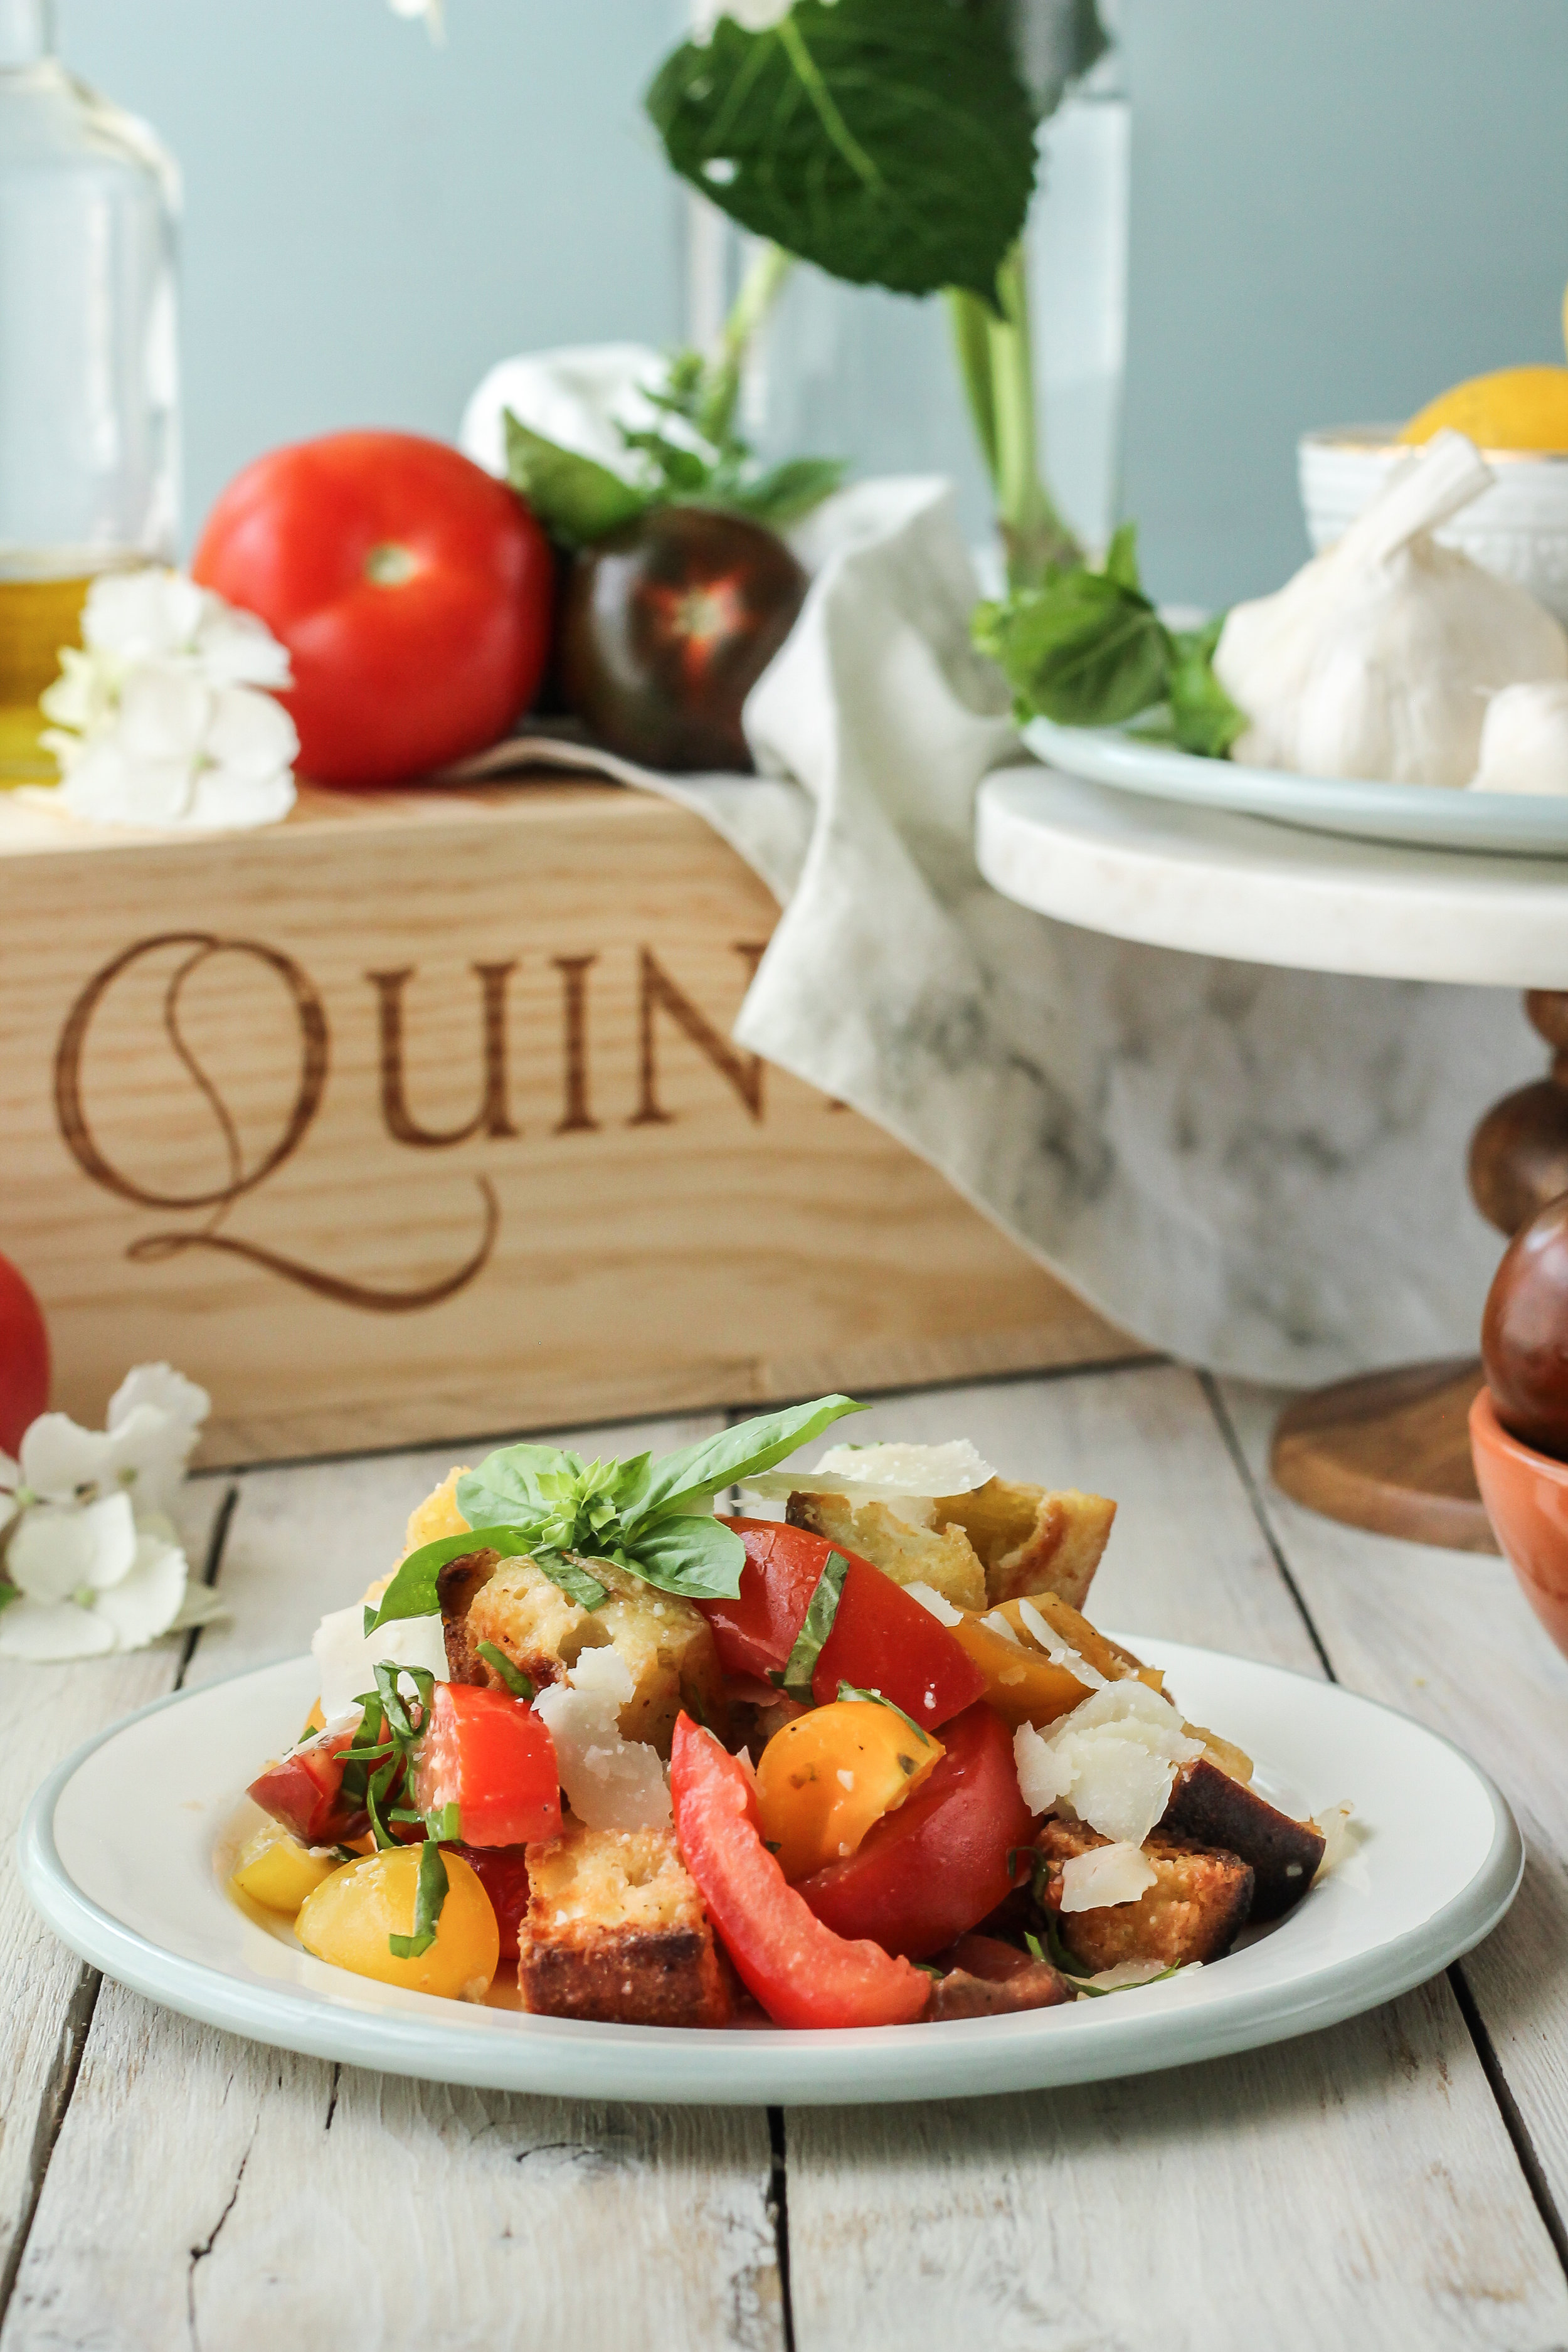 This bruschetta panzanella salad is the perfect summer side dish that comes together in minutes!  Find this recipe and so many more at www.pedanticfoodie.com!